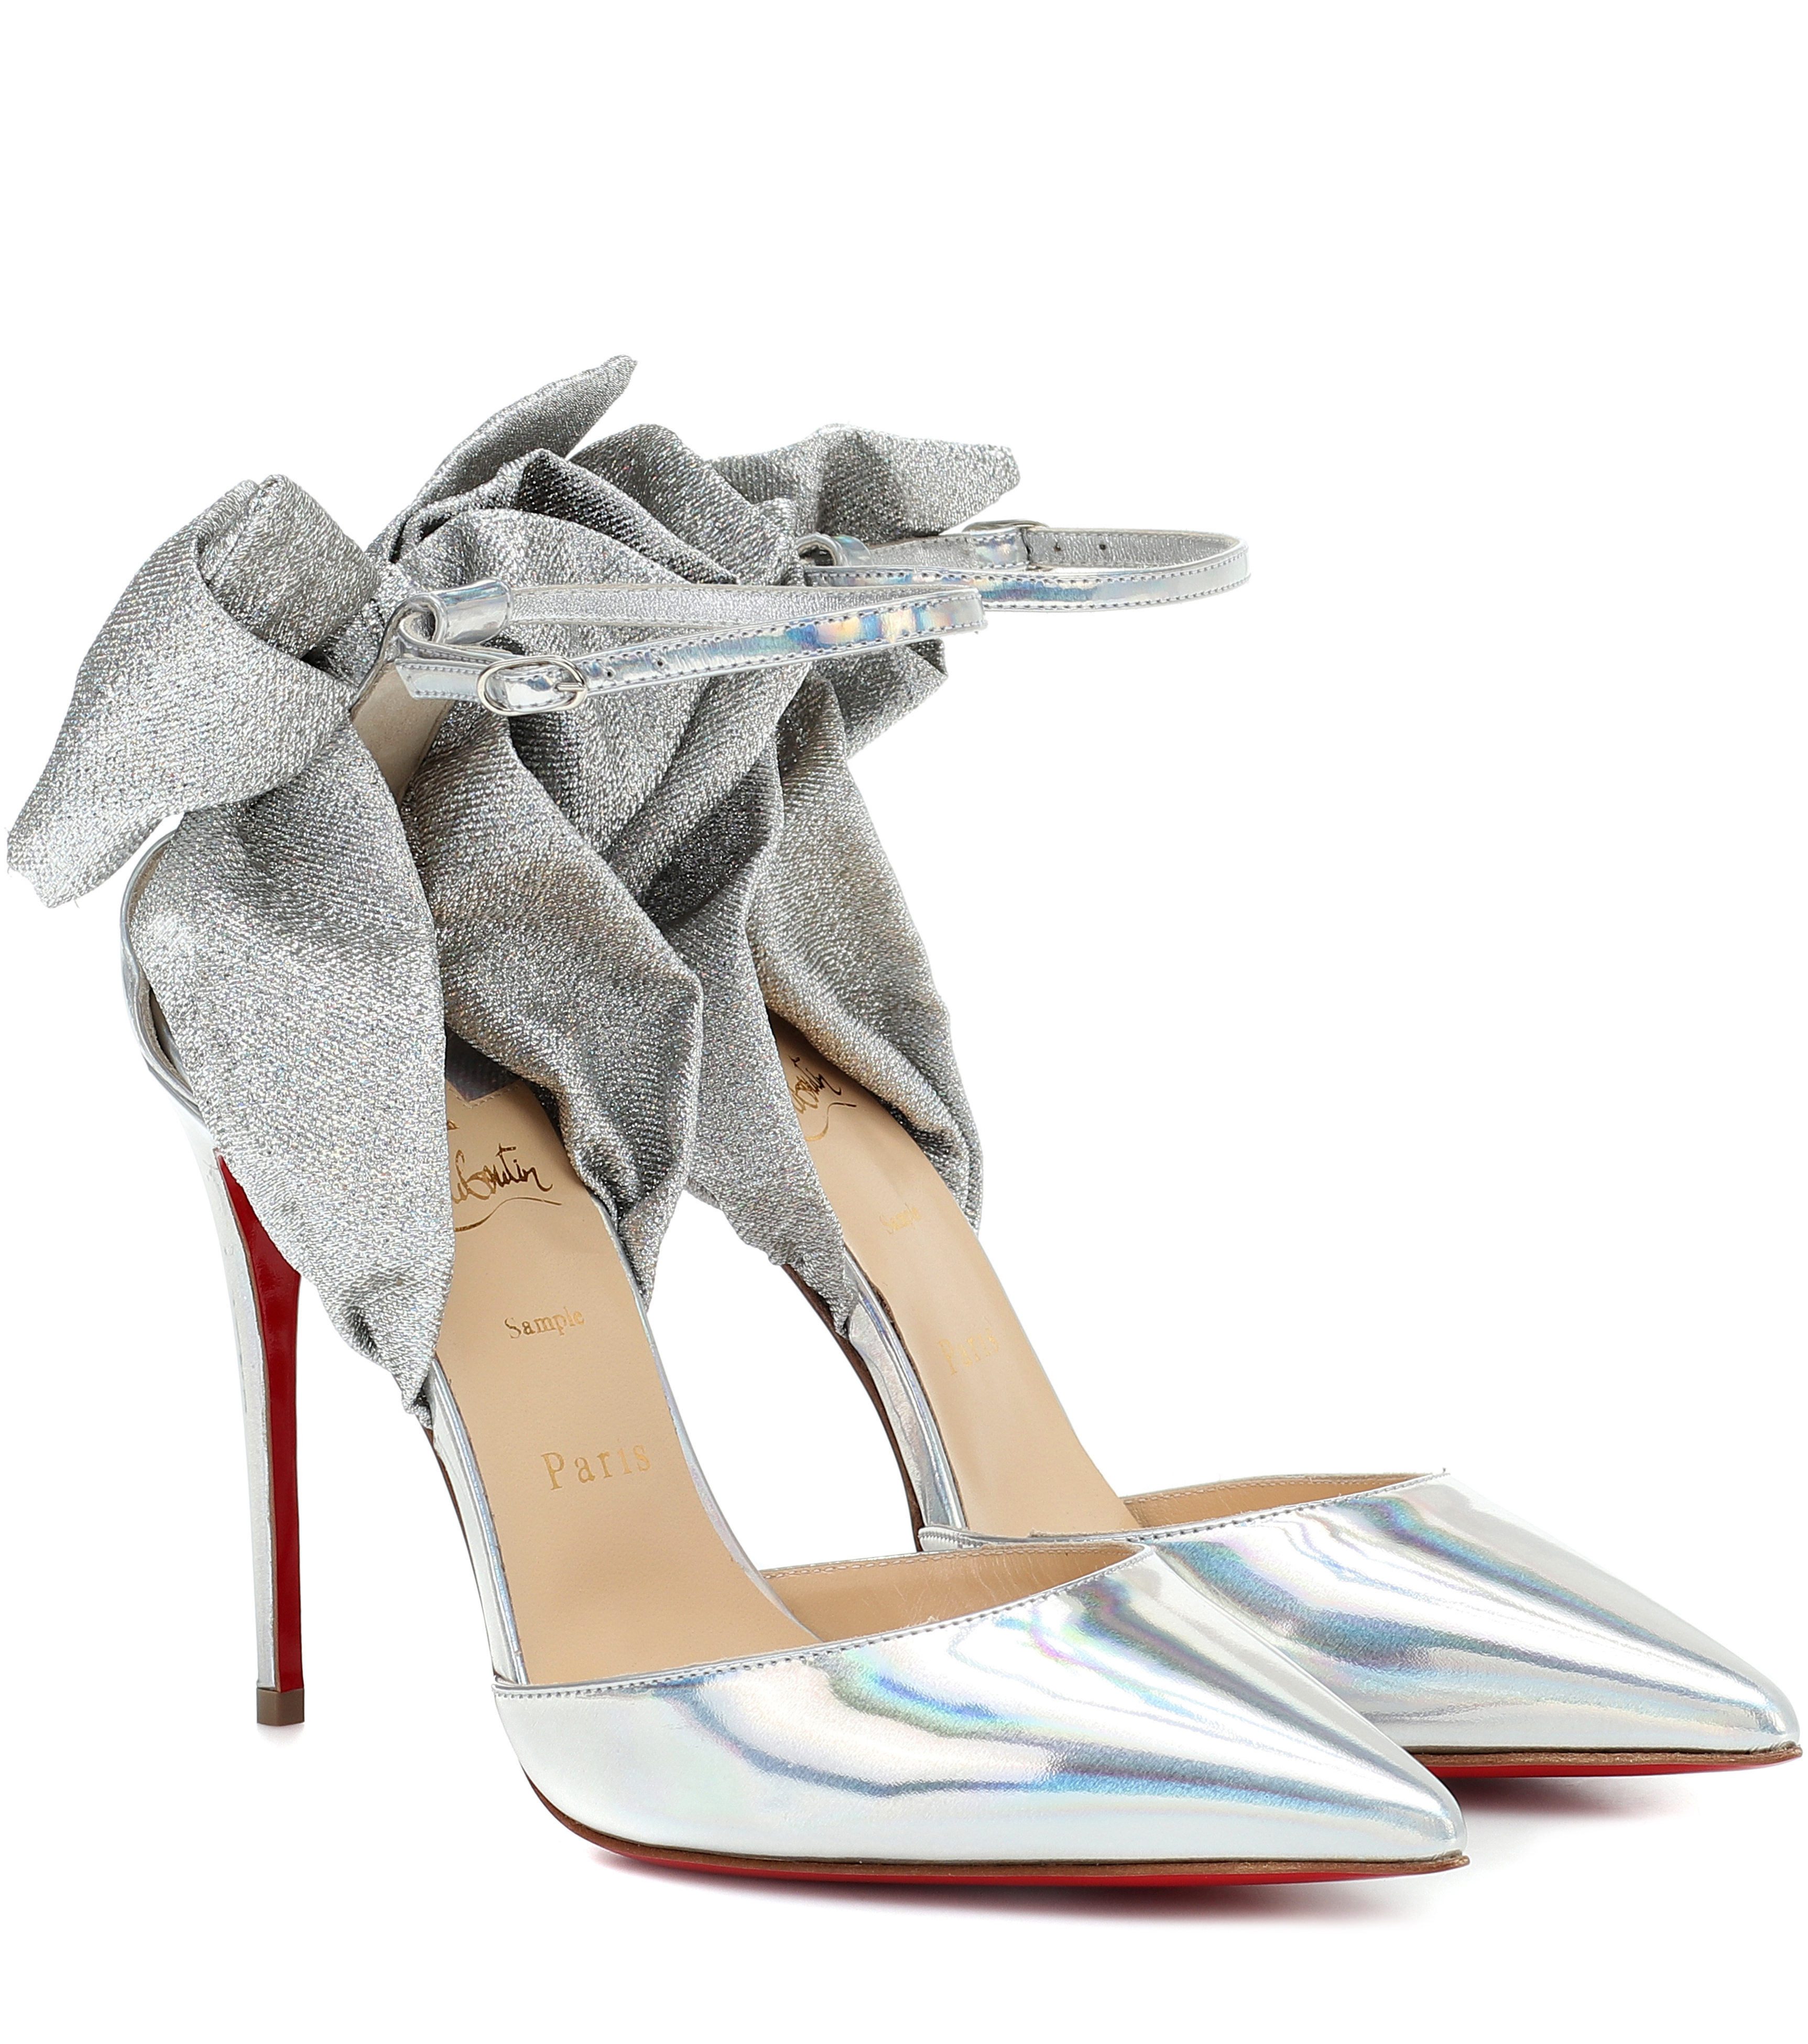 Mytheresa's exclusive capsule collection with Christian Louboutin is now available (фото 9)